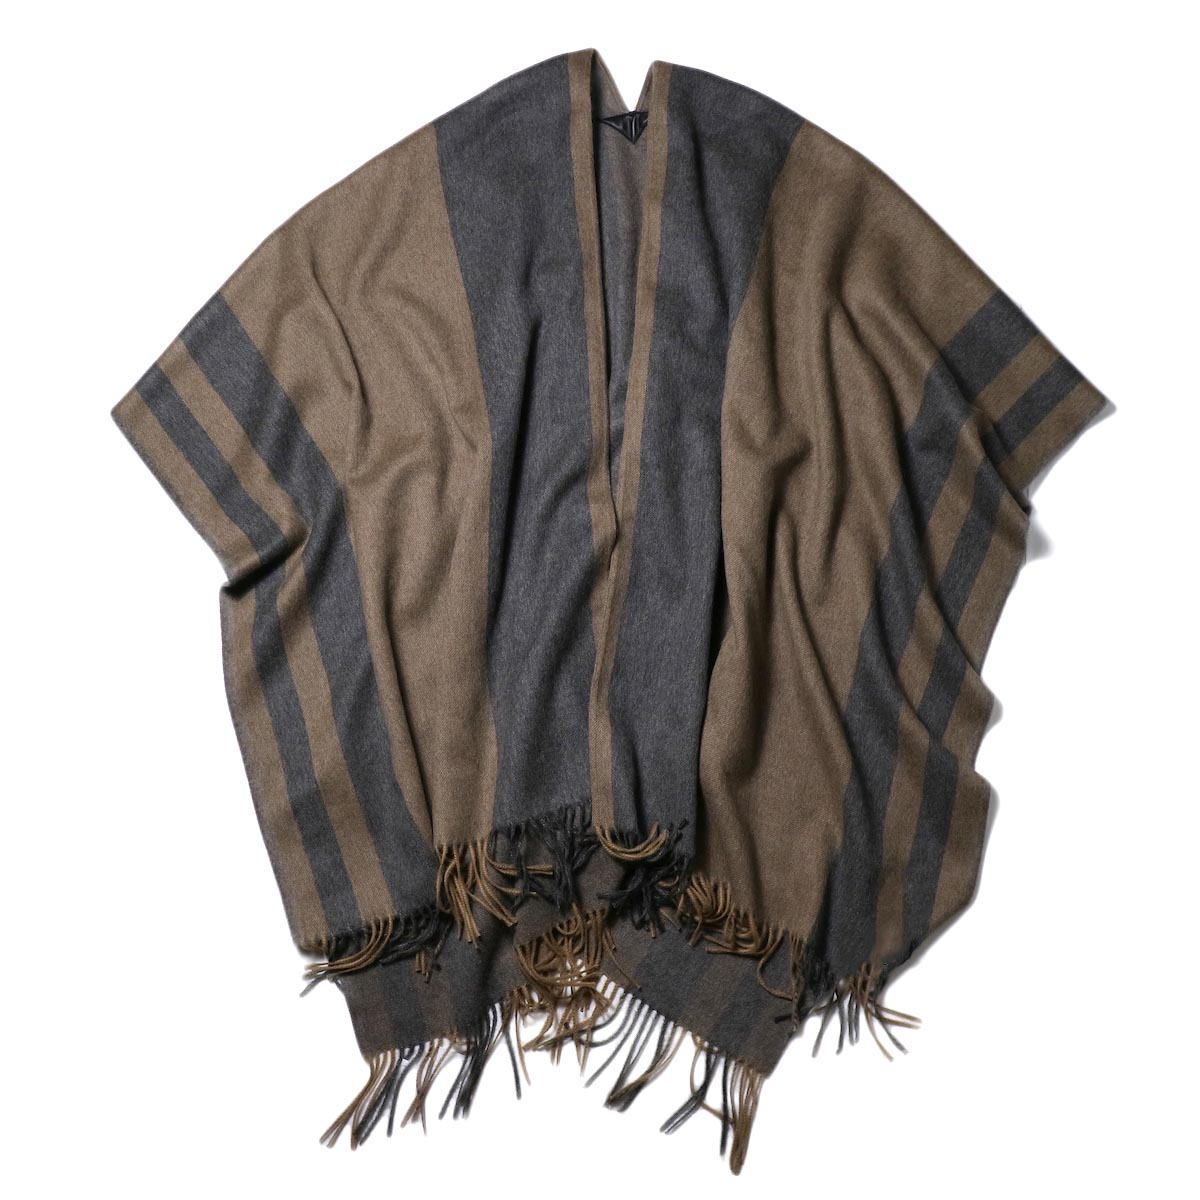 YLEVE / The Inoue Brothers Double Face Brushed Poncho (khaki beige) 正面